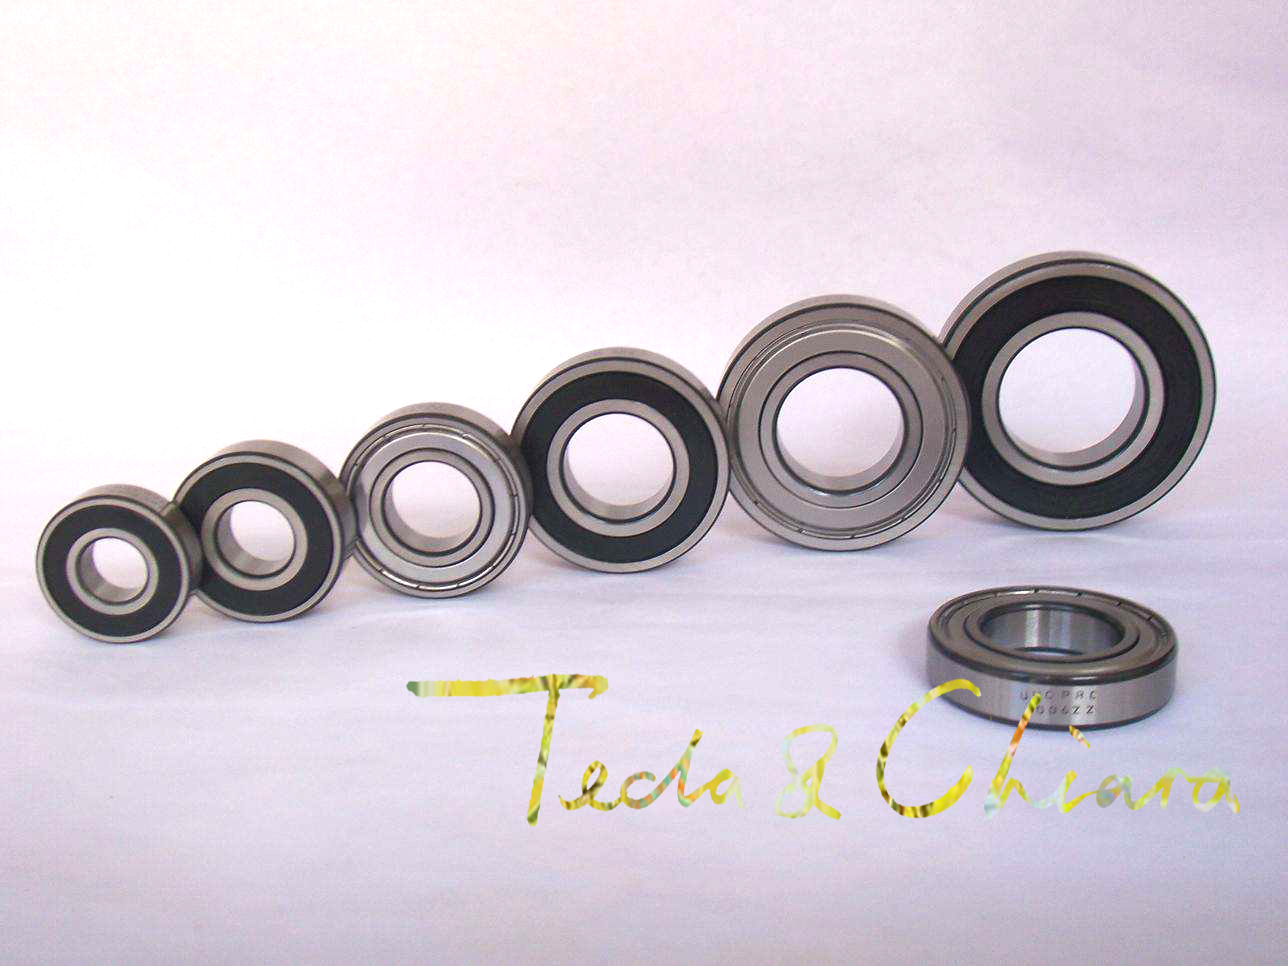 6805 6805ZZ 6805RS 6805-2Z 6805Z 6805-2RS ZZ RS RZ 2RZ Deep Groove Ball Bearings 25 x 37 x 7mm High Quality 6700 6700zz 6700rs 6700 2z 6700z 6700 2rs zz rs rz 2rz deep groove ball bearings 10 x 15 x 4mm high quality